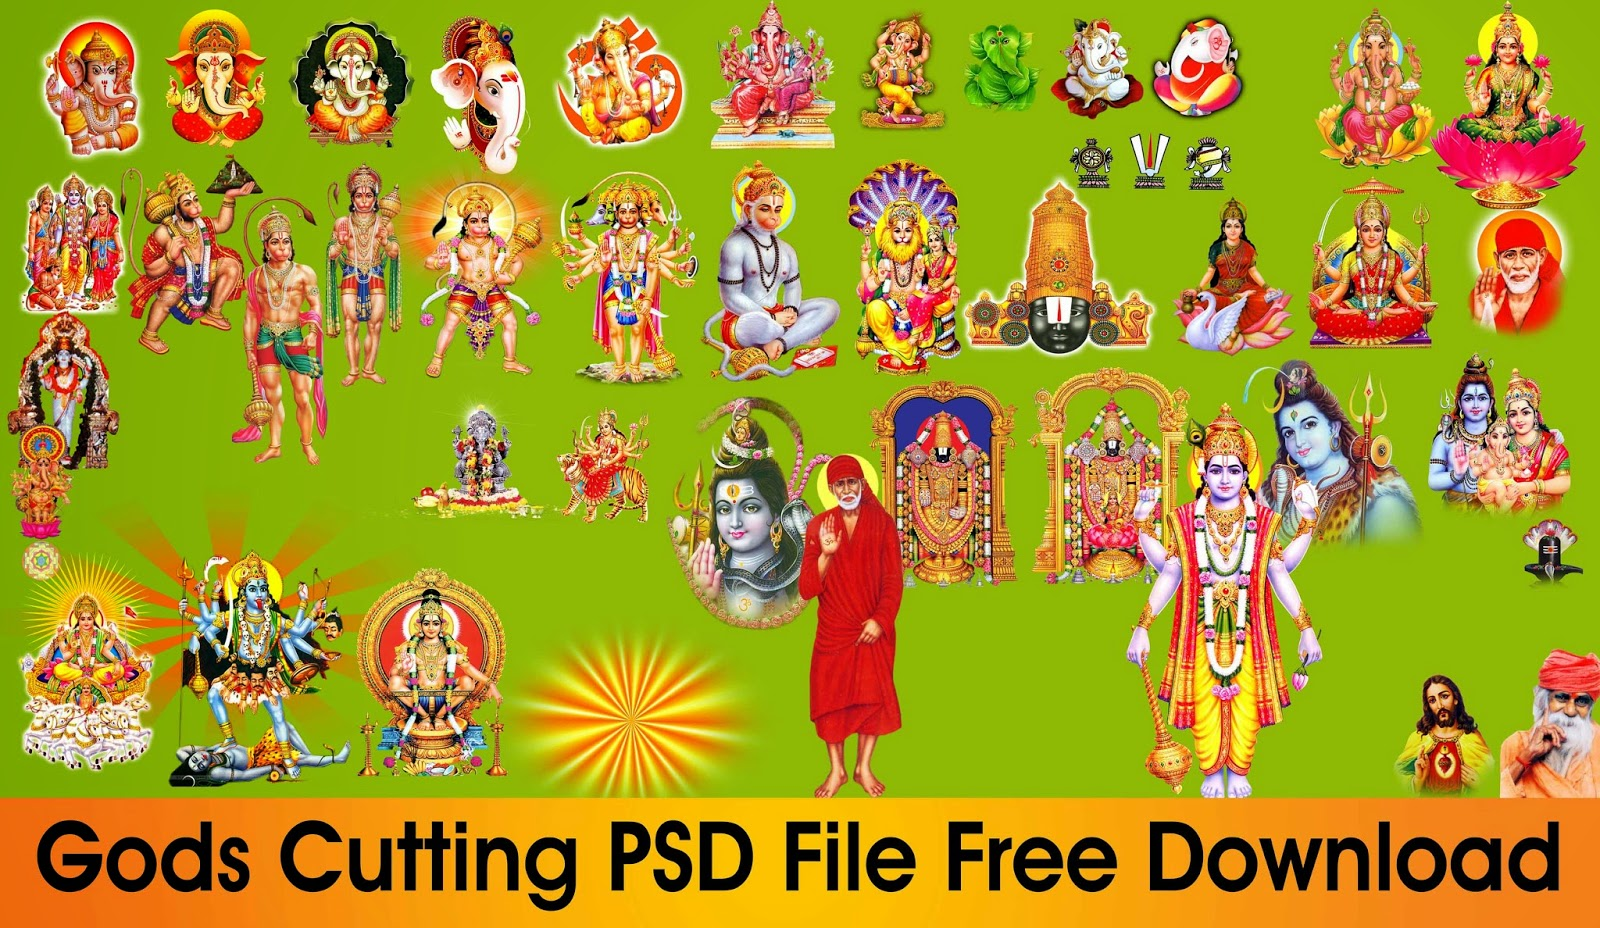 Gods Psd Open File Free Download Naveengfx